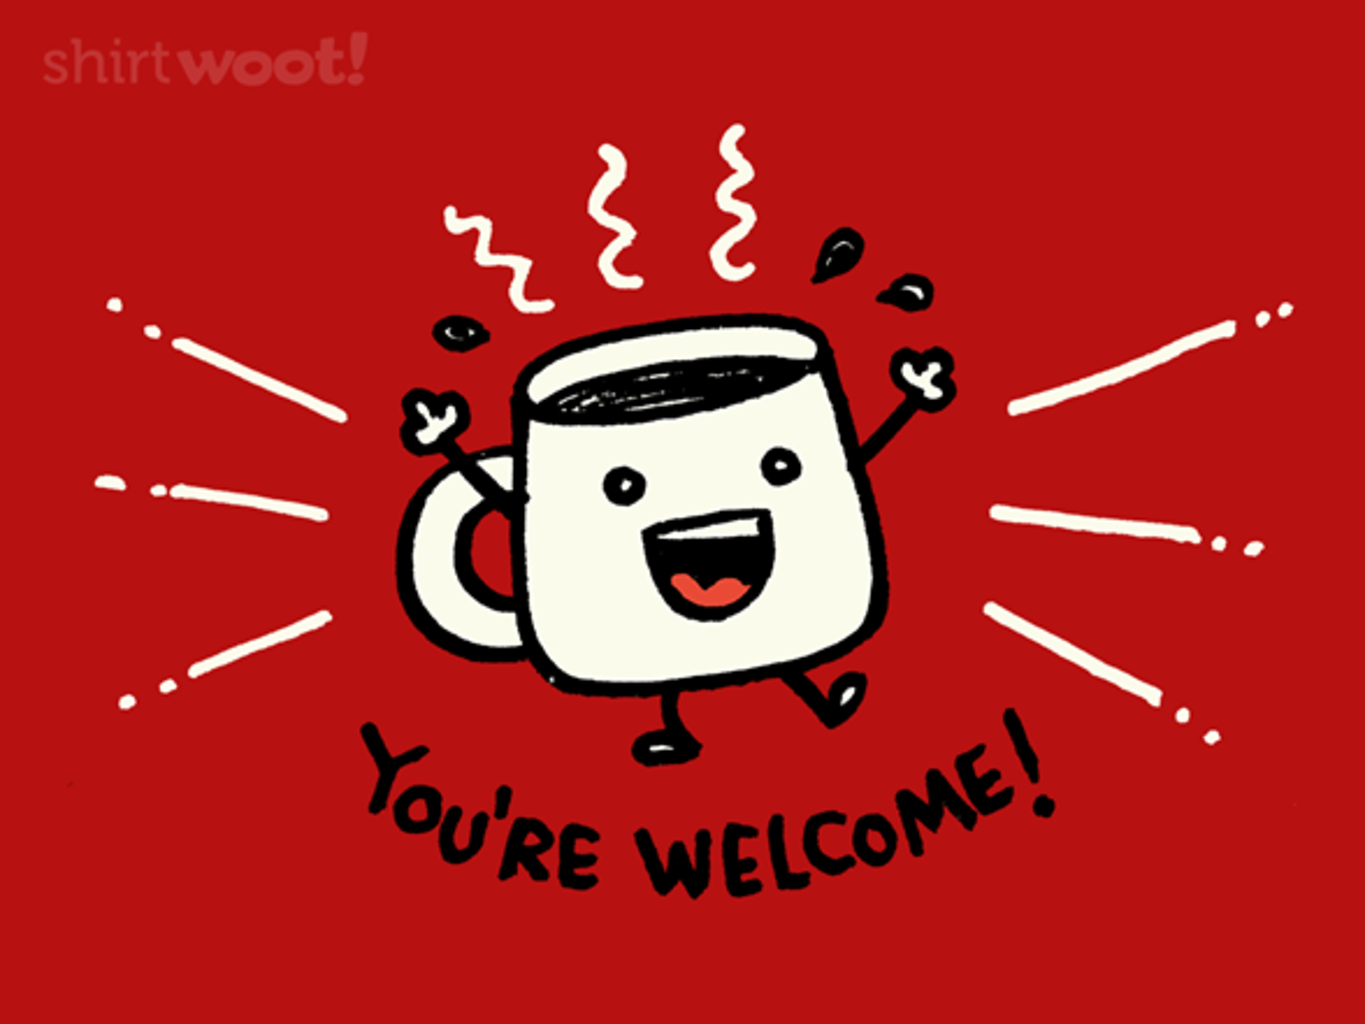 Woot!: Thanks Coffee!